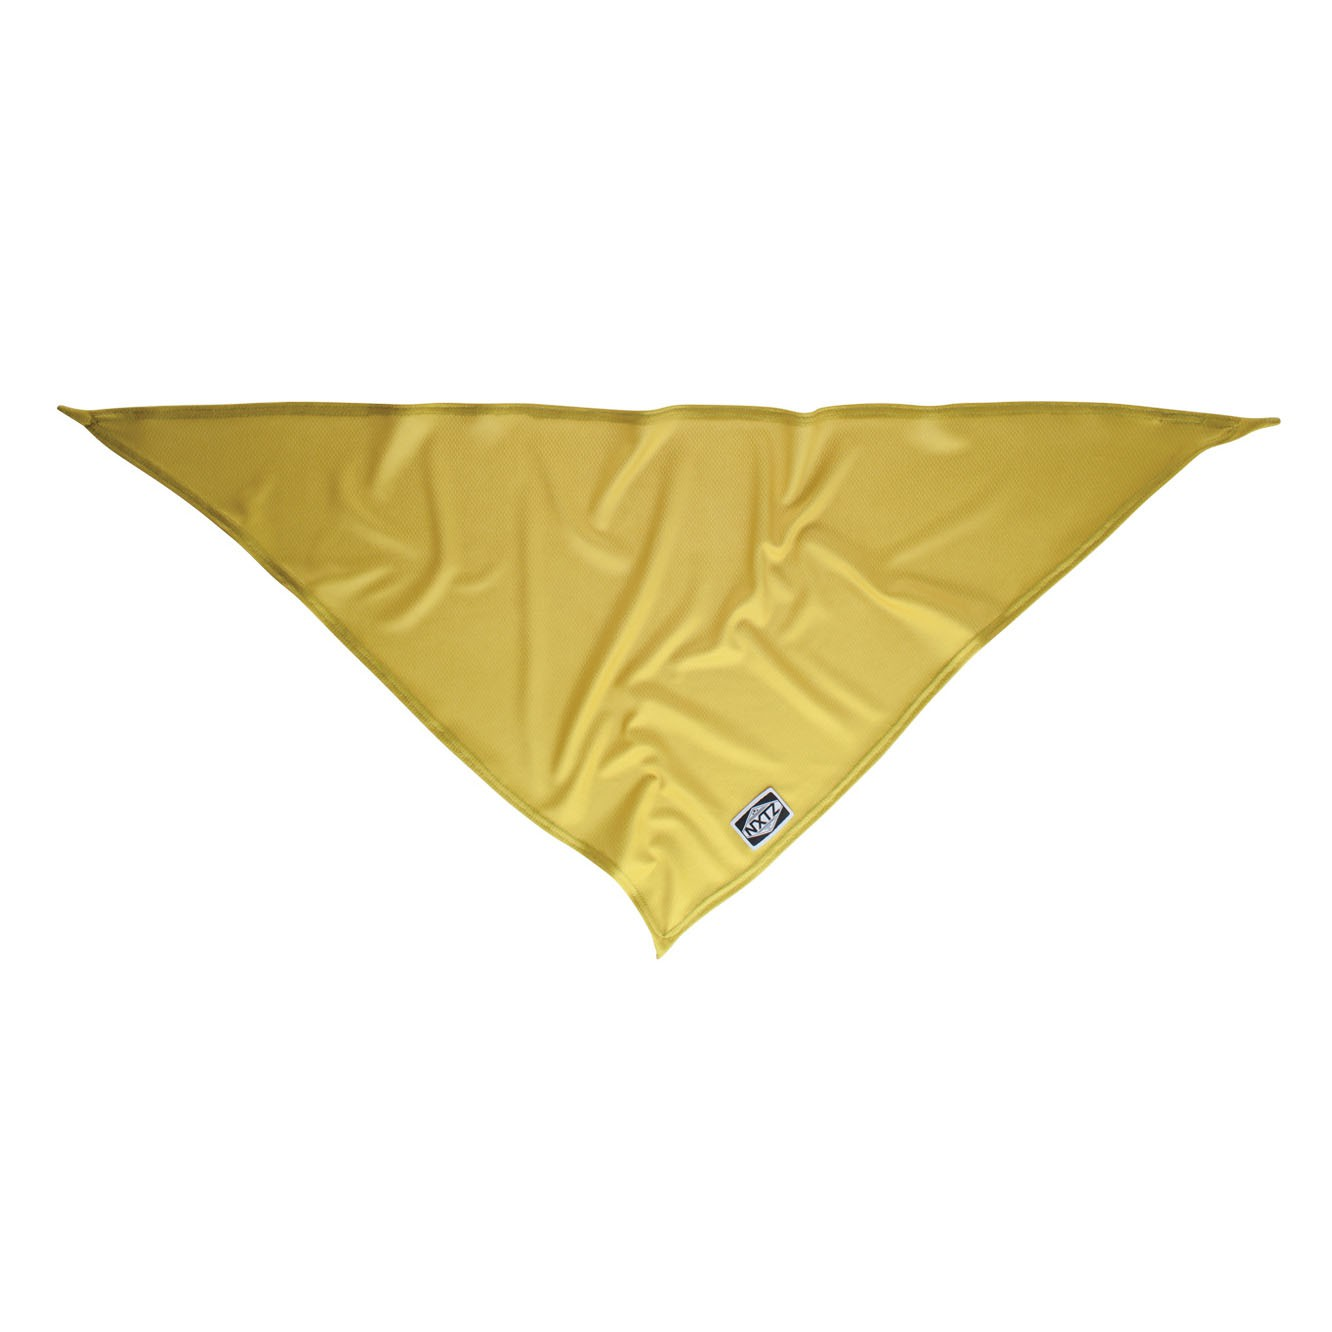 Šátek NXTZ Single Layer Bandana sun